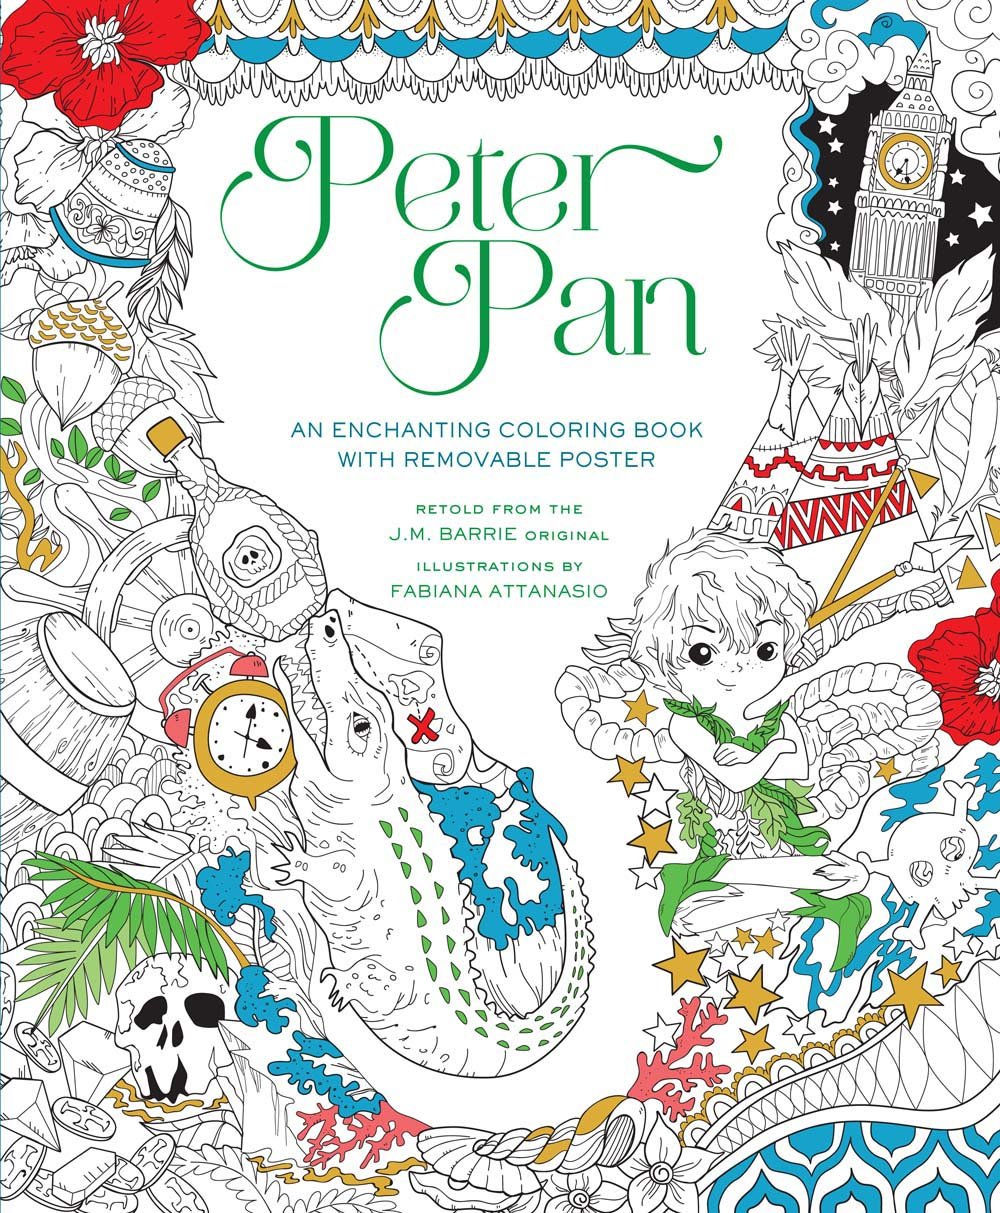 Peter Pan Coloring Book Fabiana Attanasio 9781454920908 Amazon Books